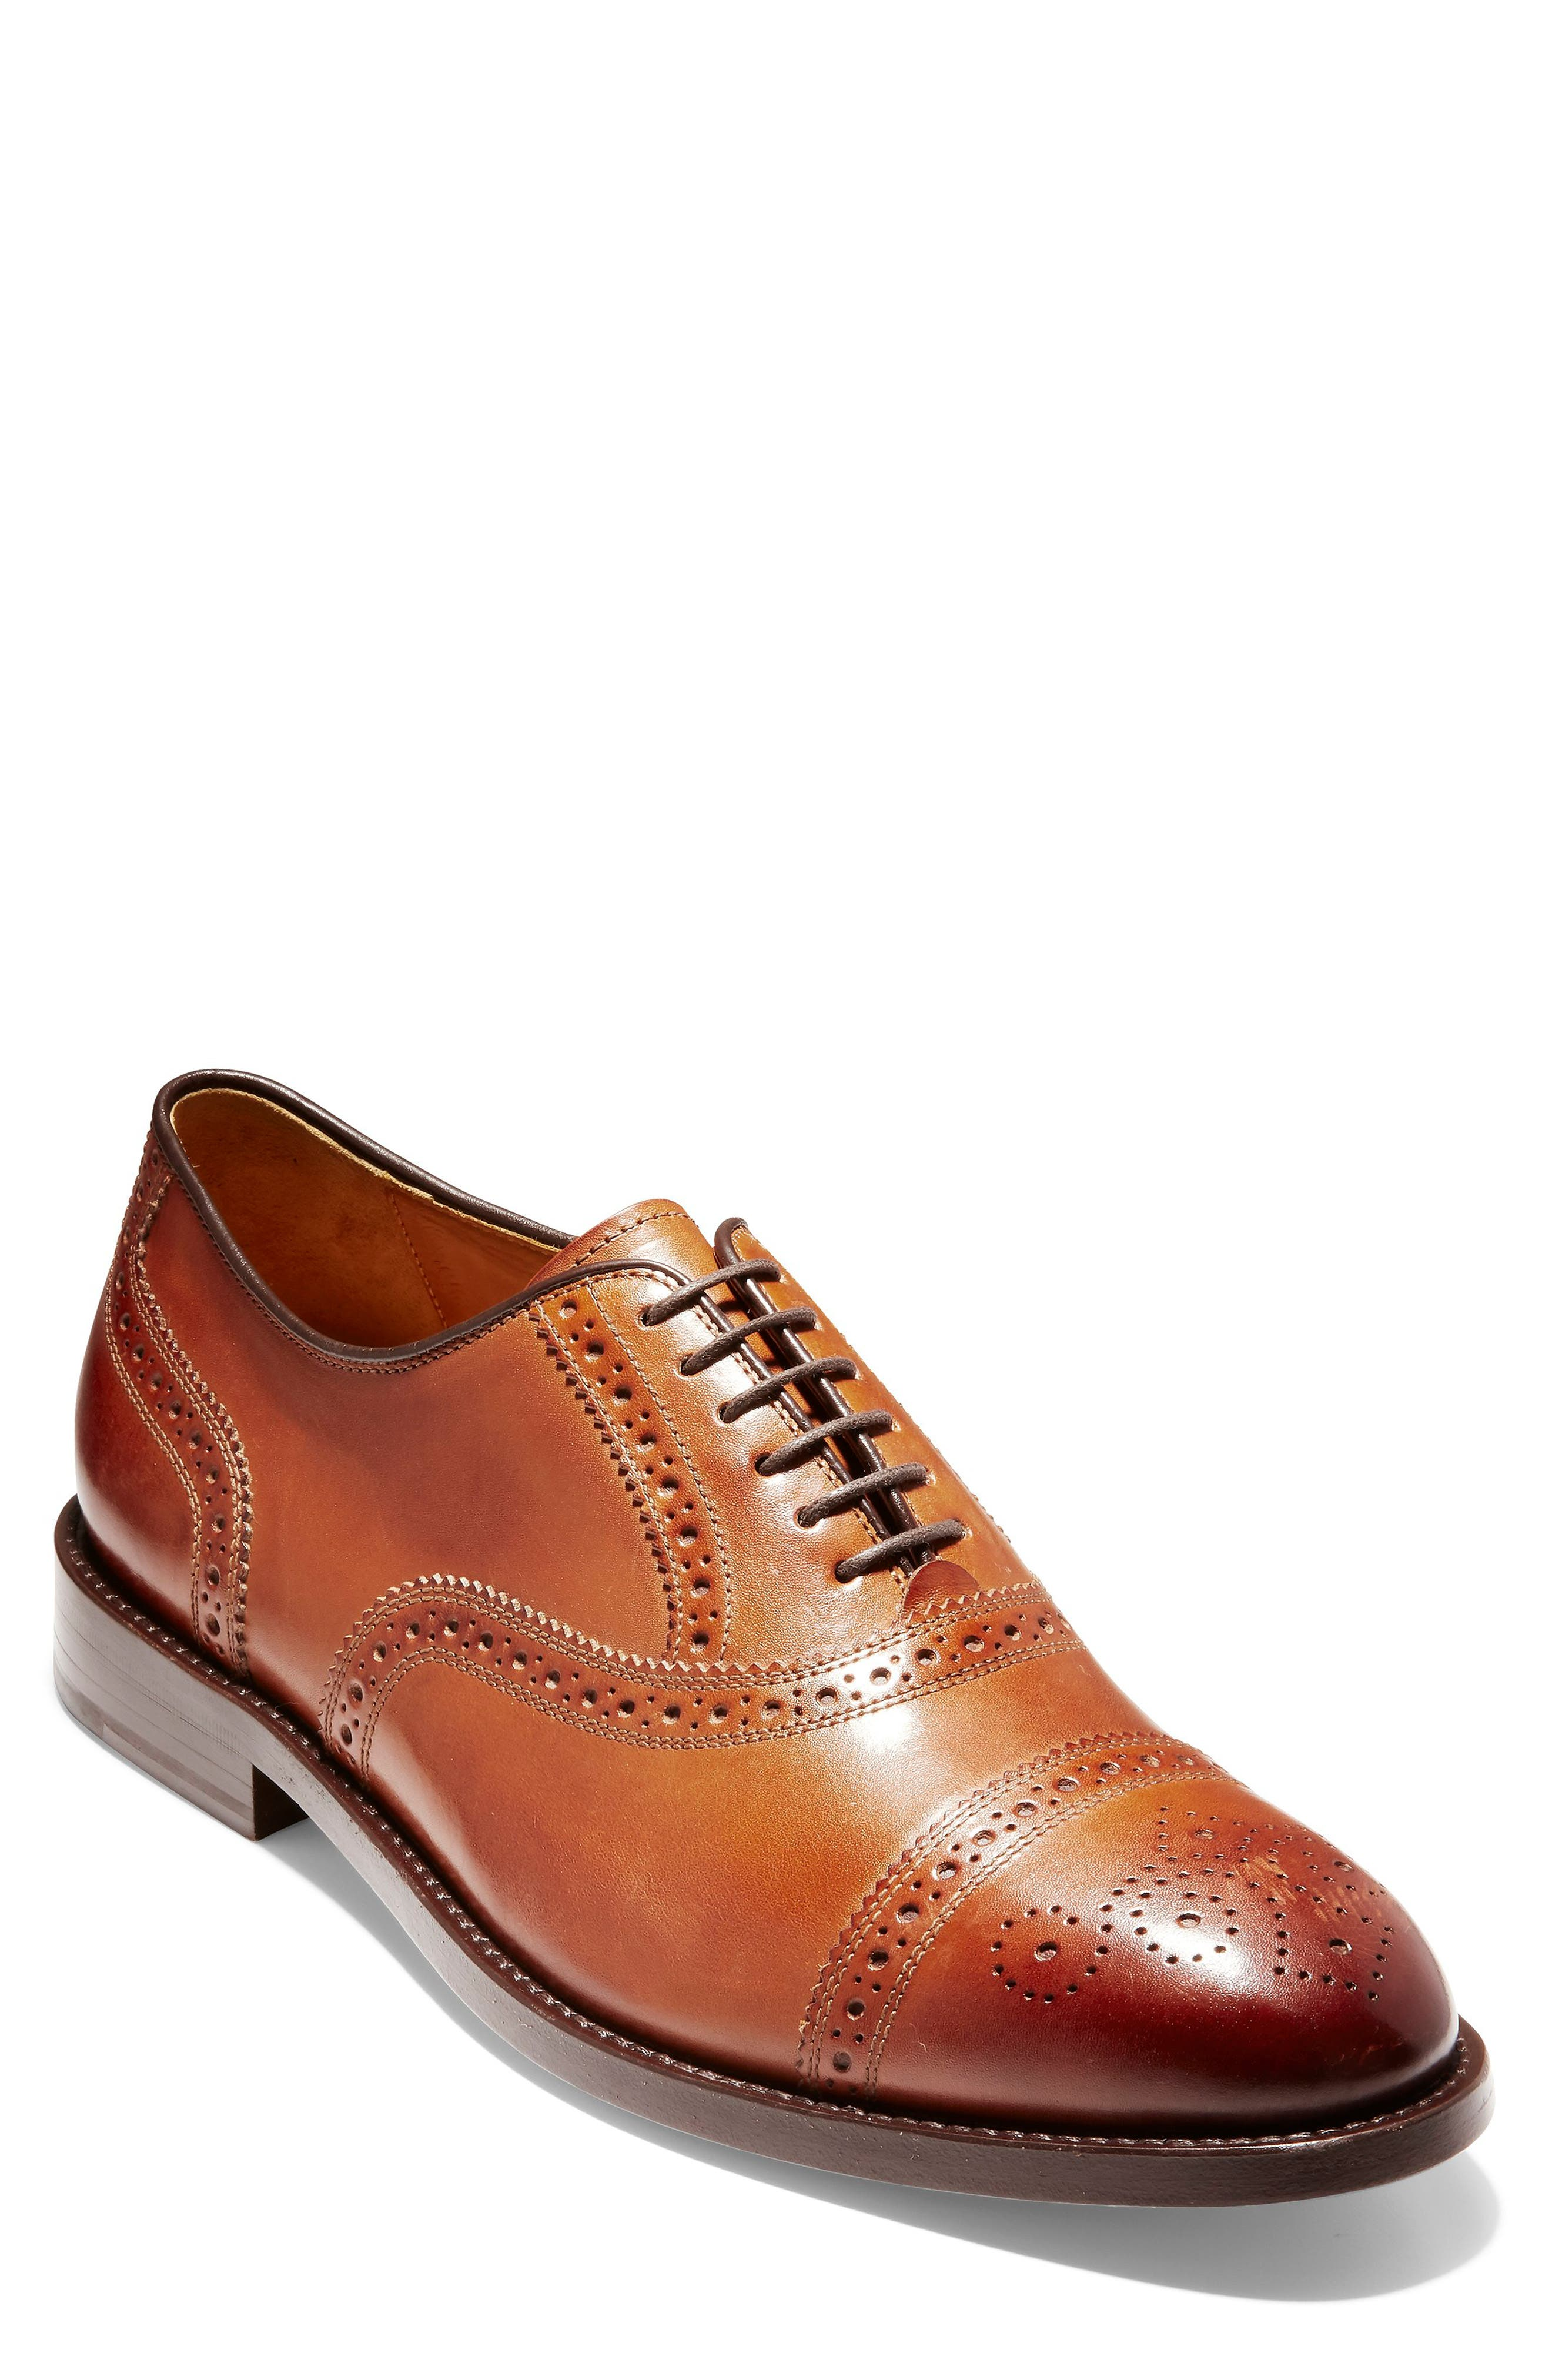 COLE HAAN, American Classics Kneeland Cap Toe Oxford, Main thumbnail 1, color, BRITISH TAN LEATHER